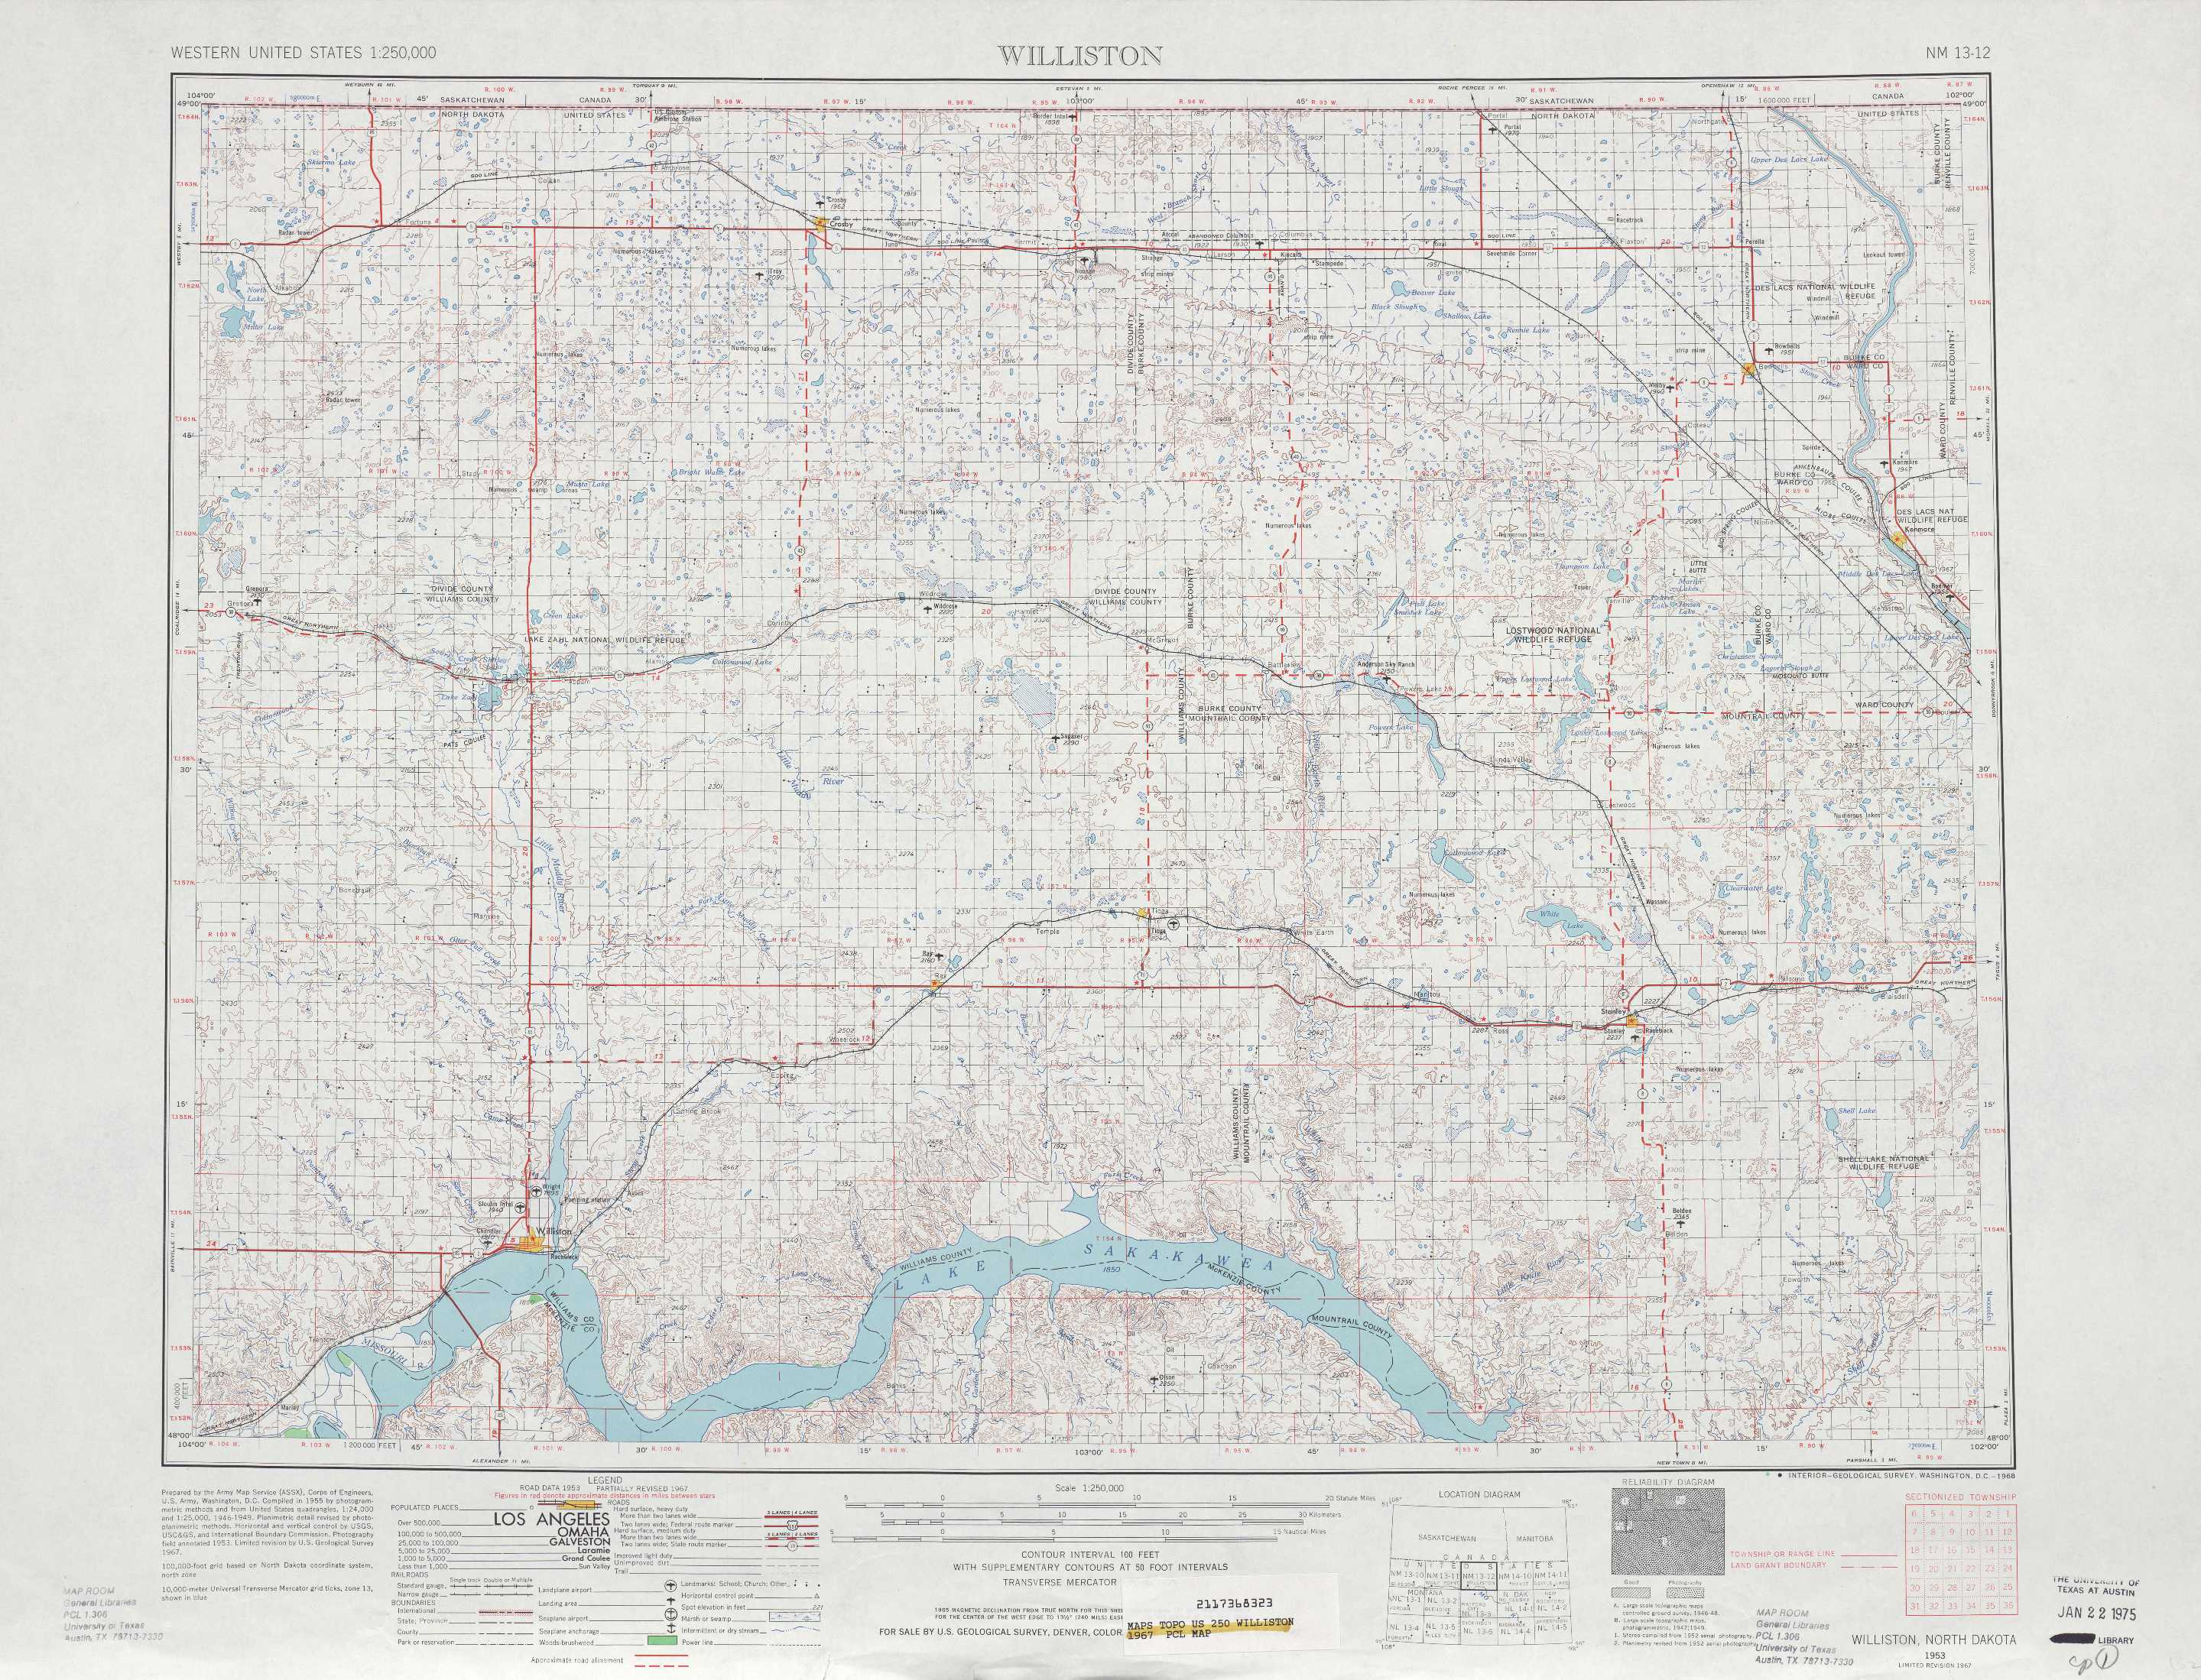 Williston topographic maps ND USGS Topo Quad 48102a1 at 1250000